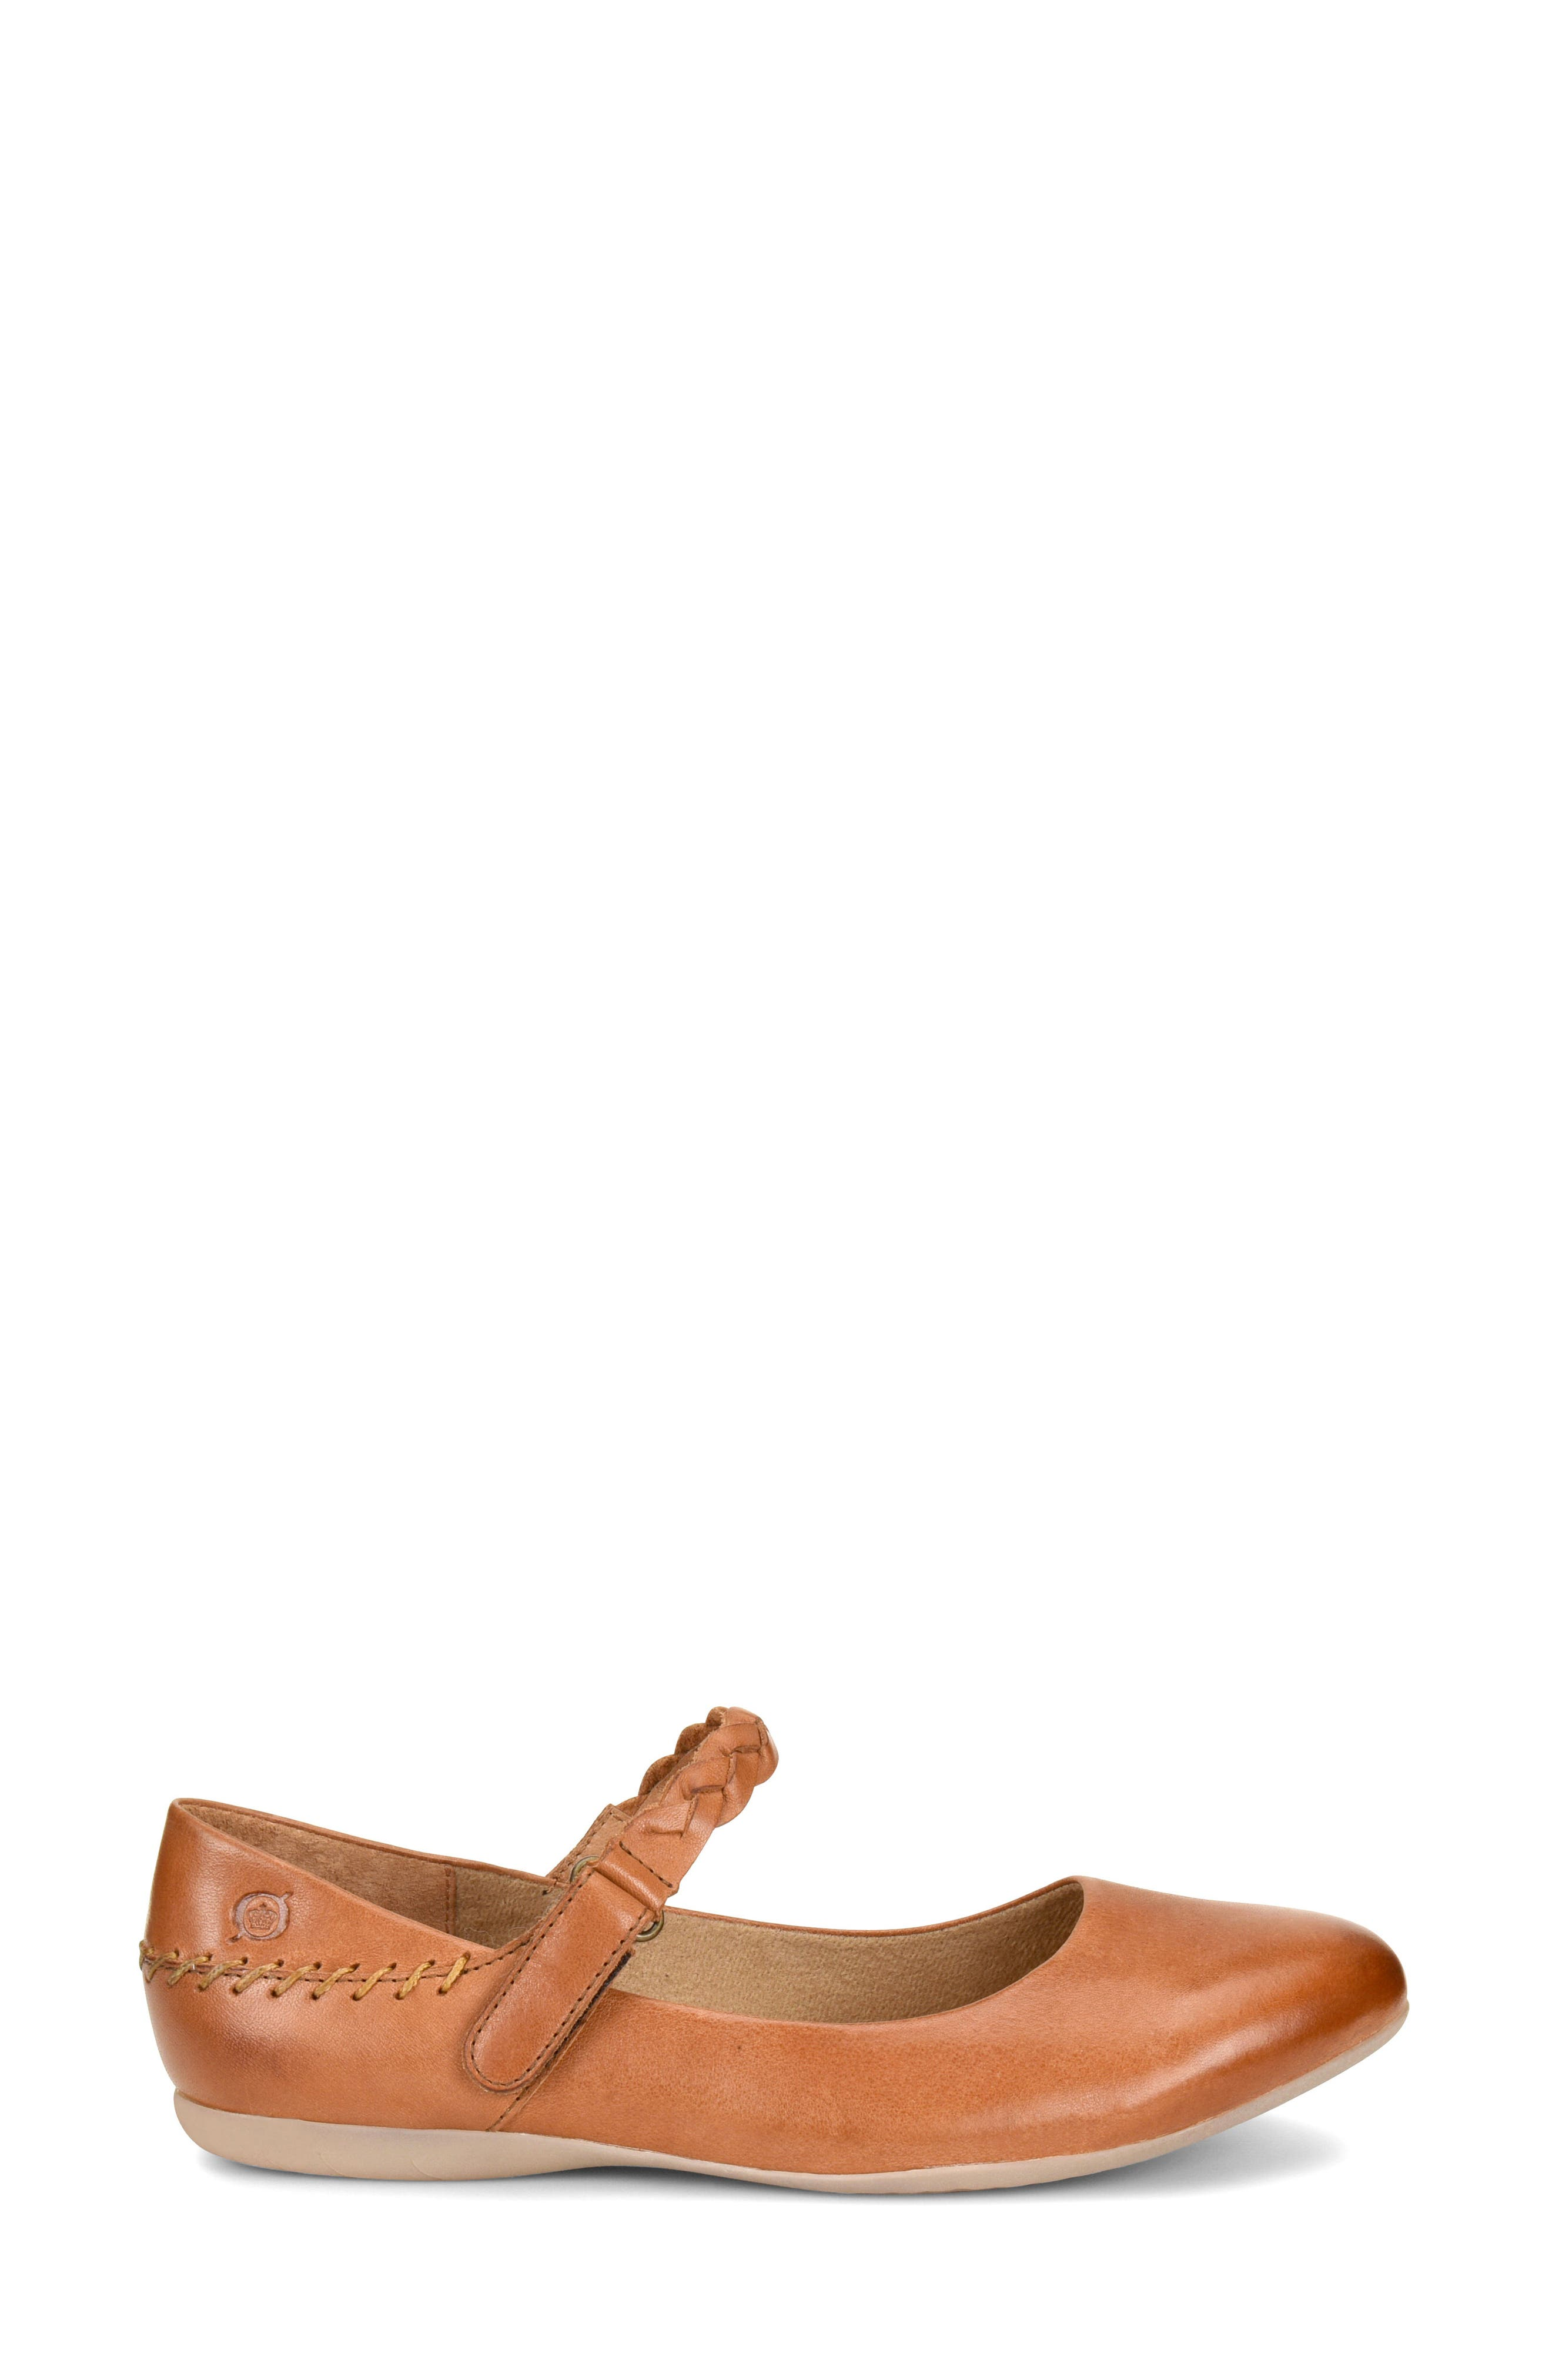 Mary Jane Flat,                             Alternate thumbnail 3, color,                             Rust Leather